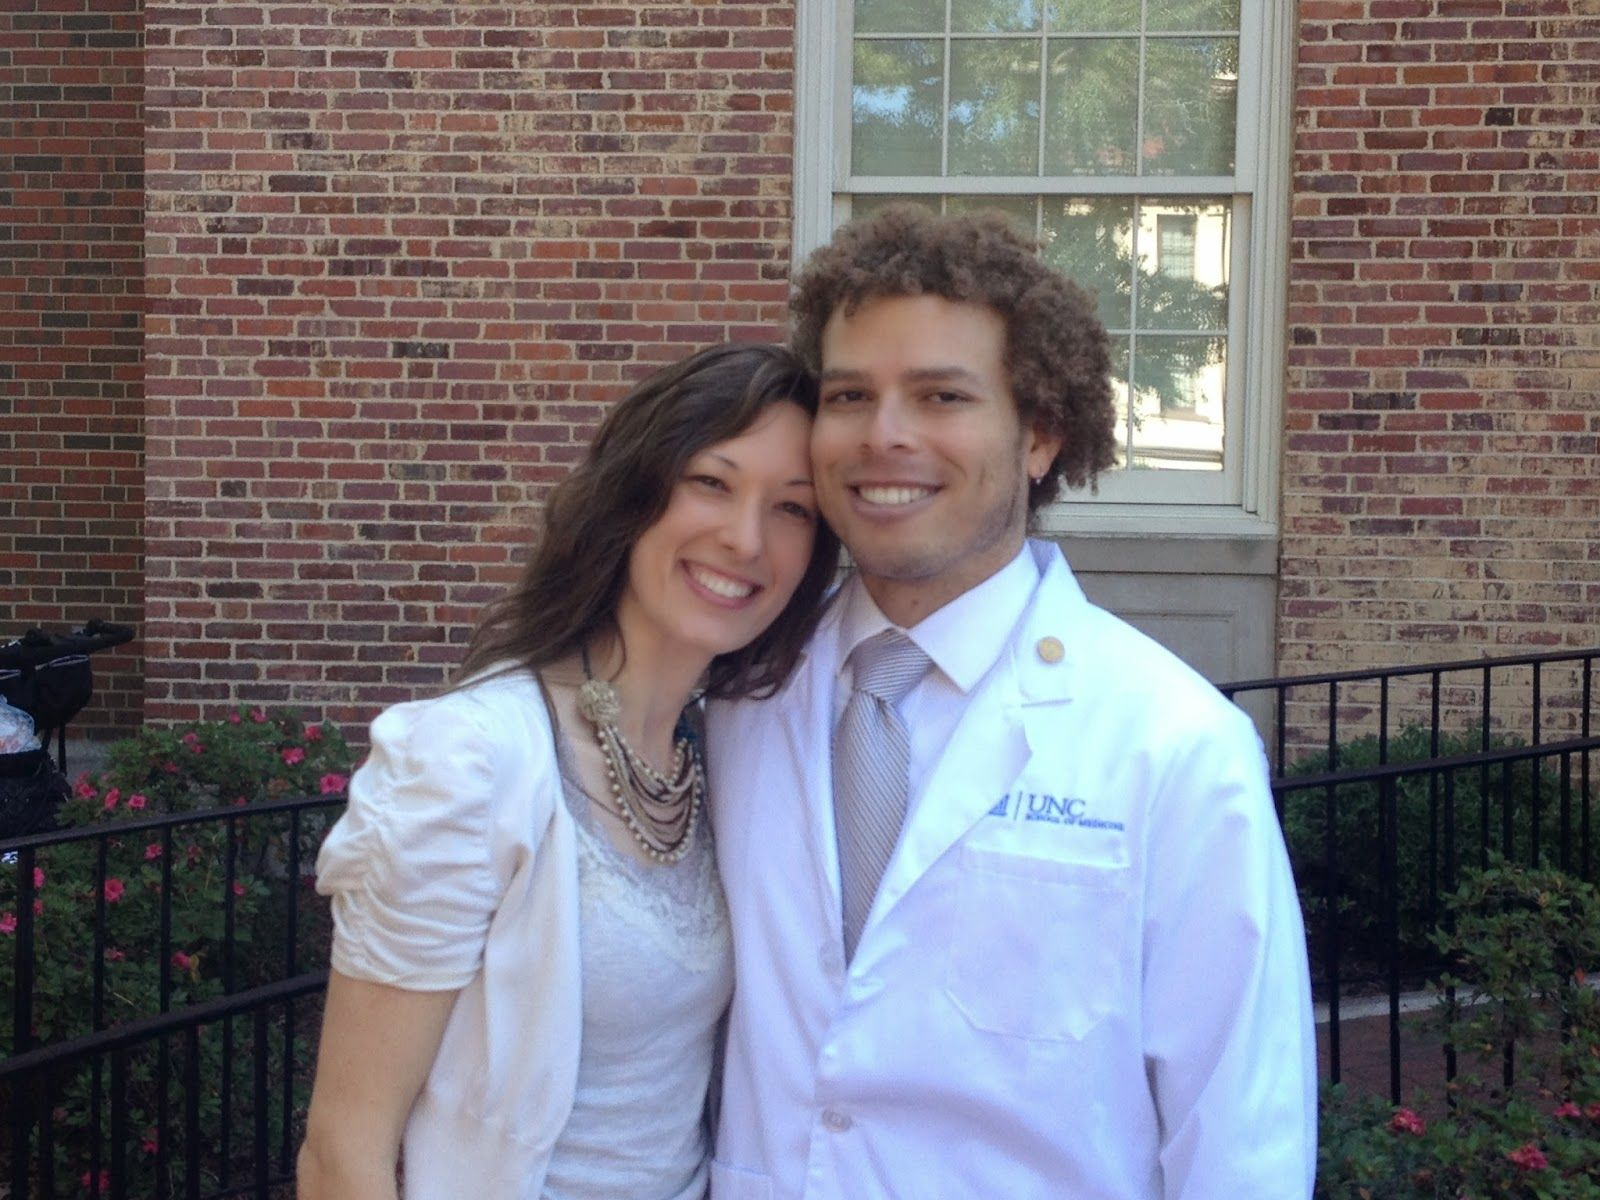 Dating a female med student white coat